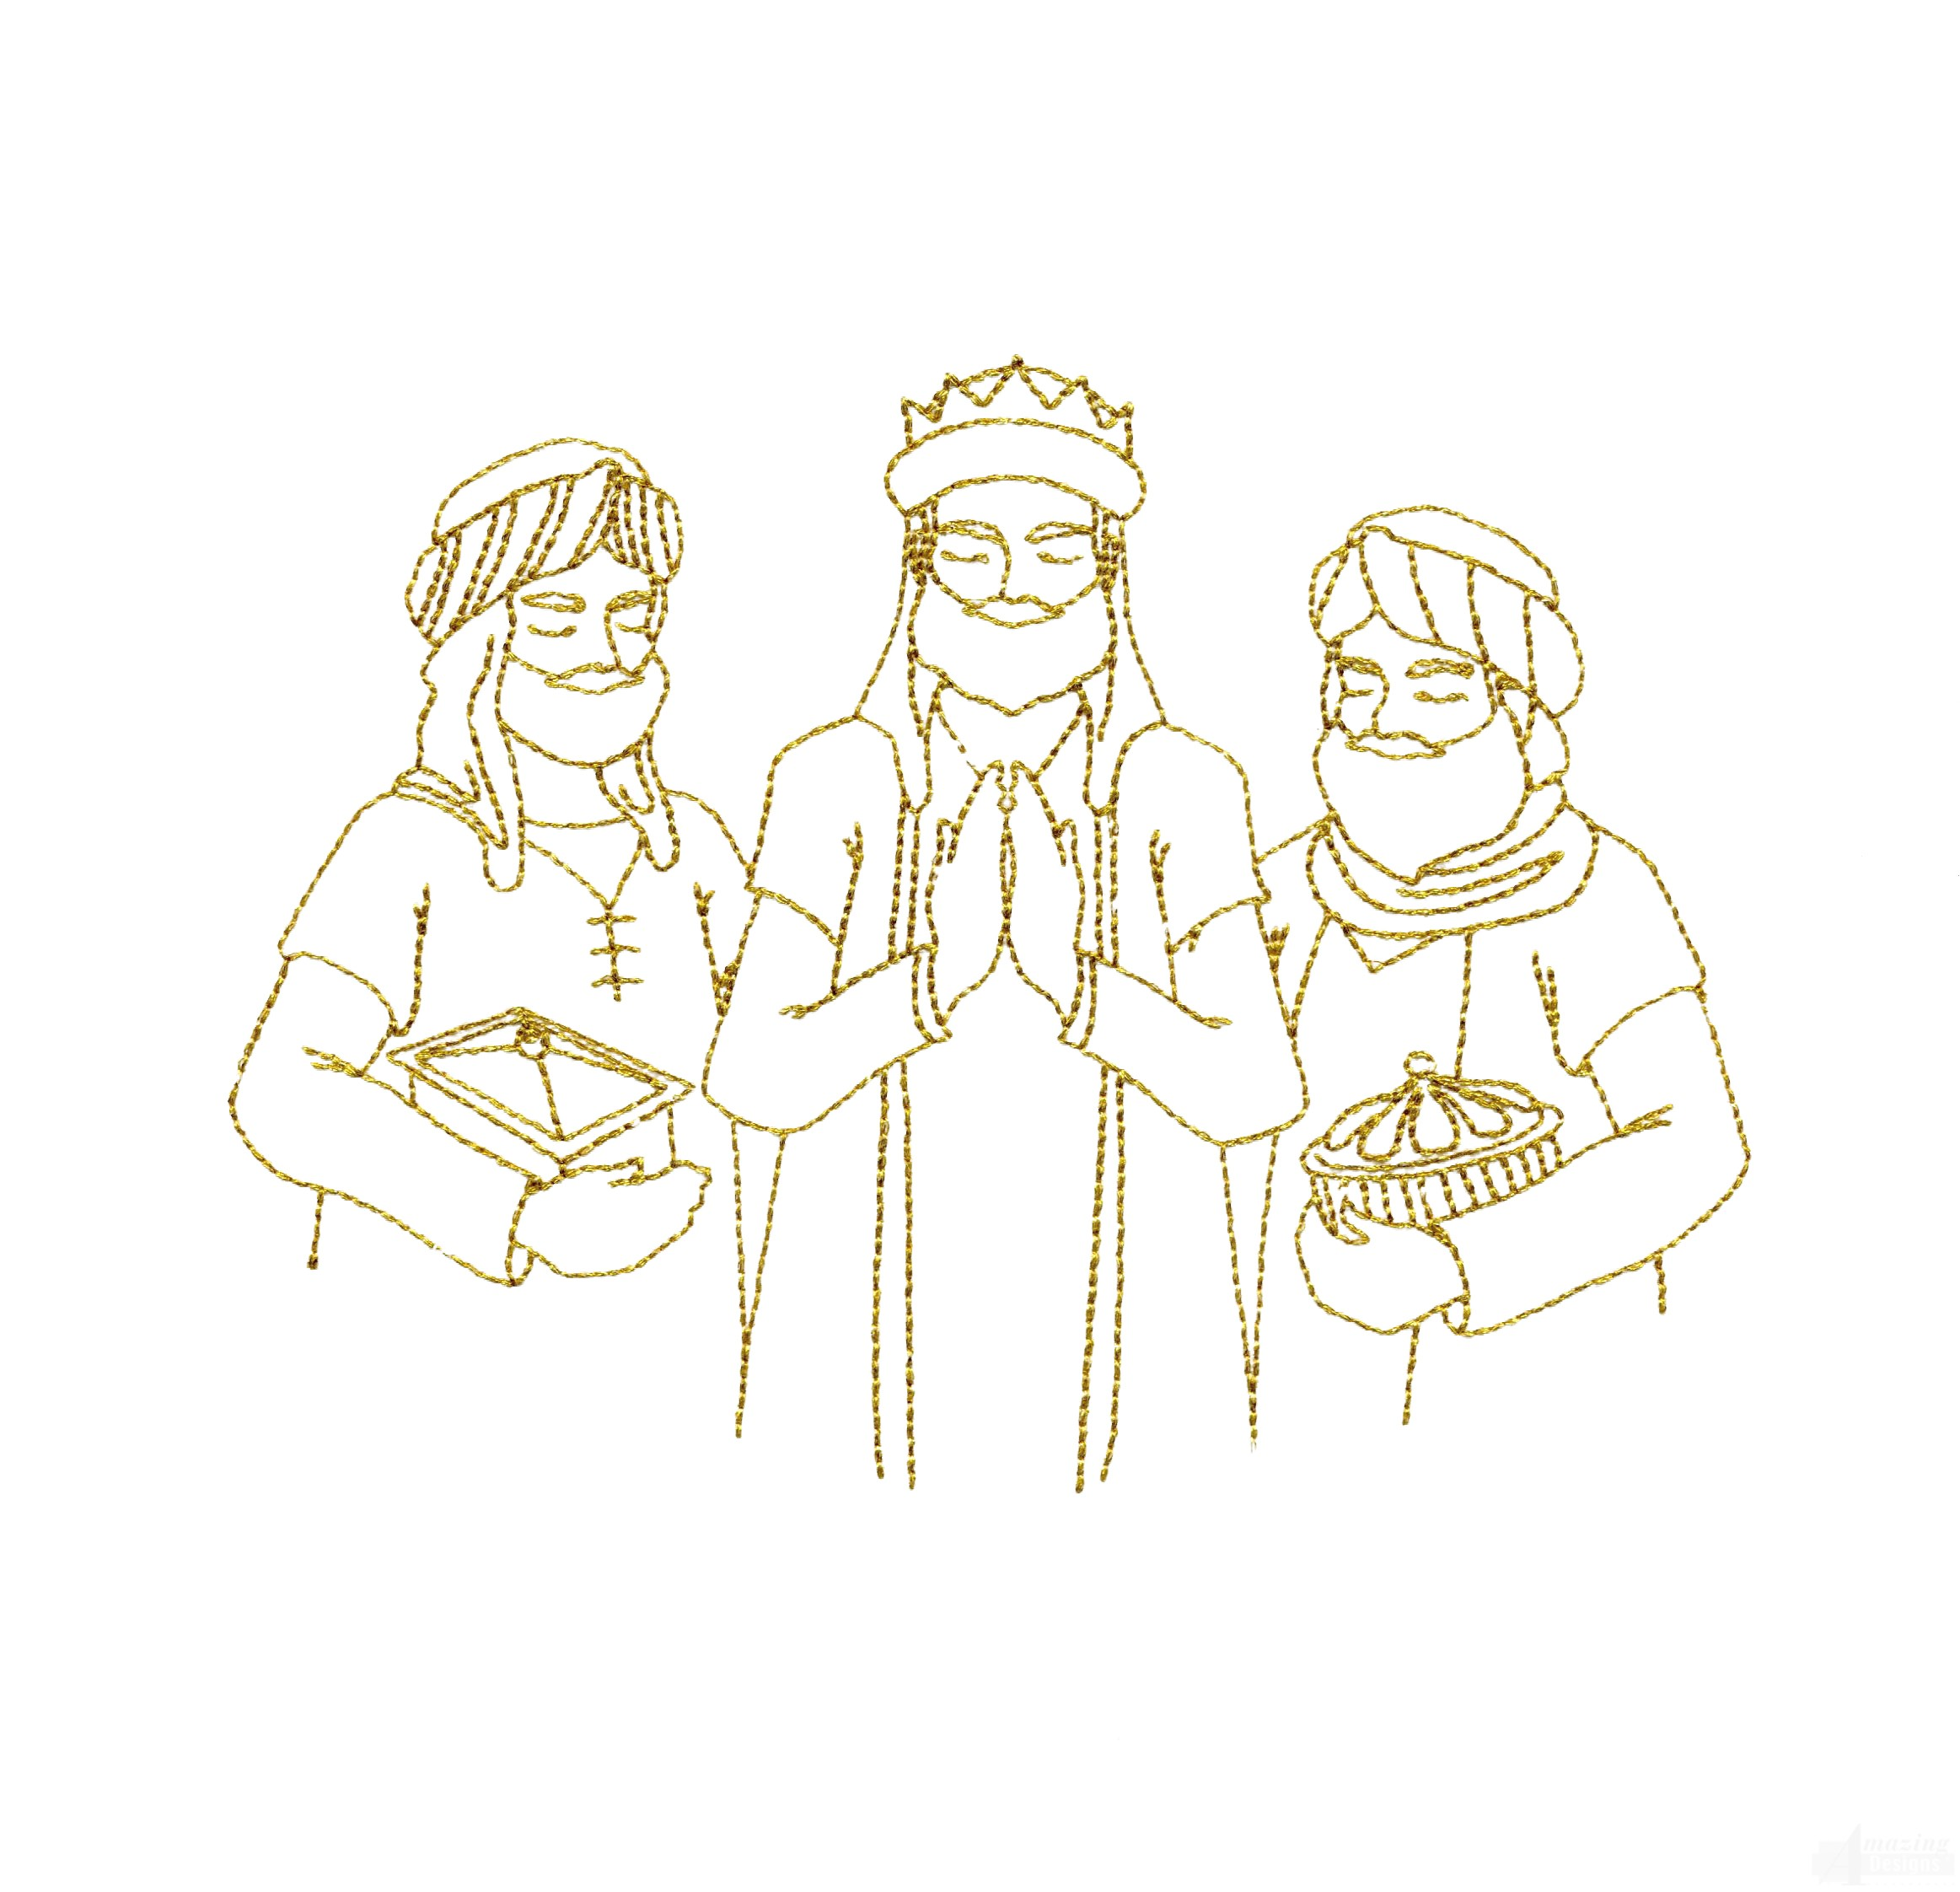 Line Work Design : Linework wisemen embroidery design